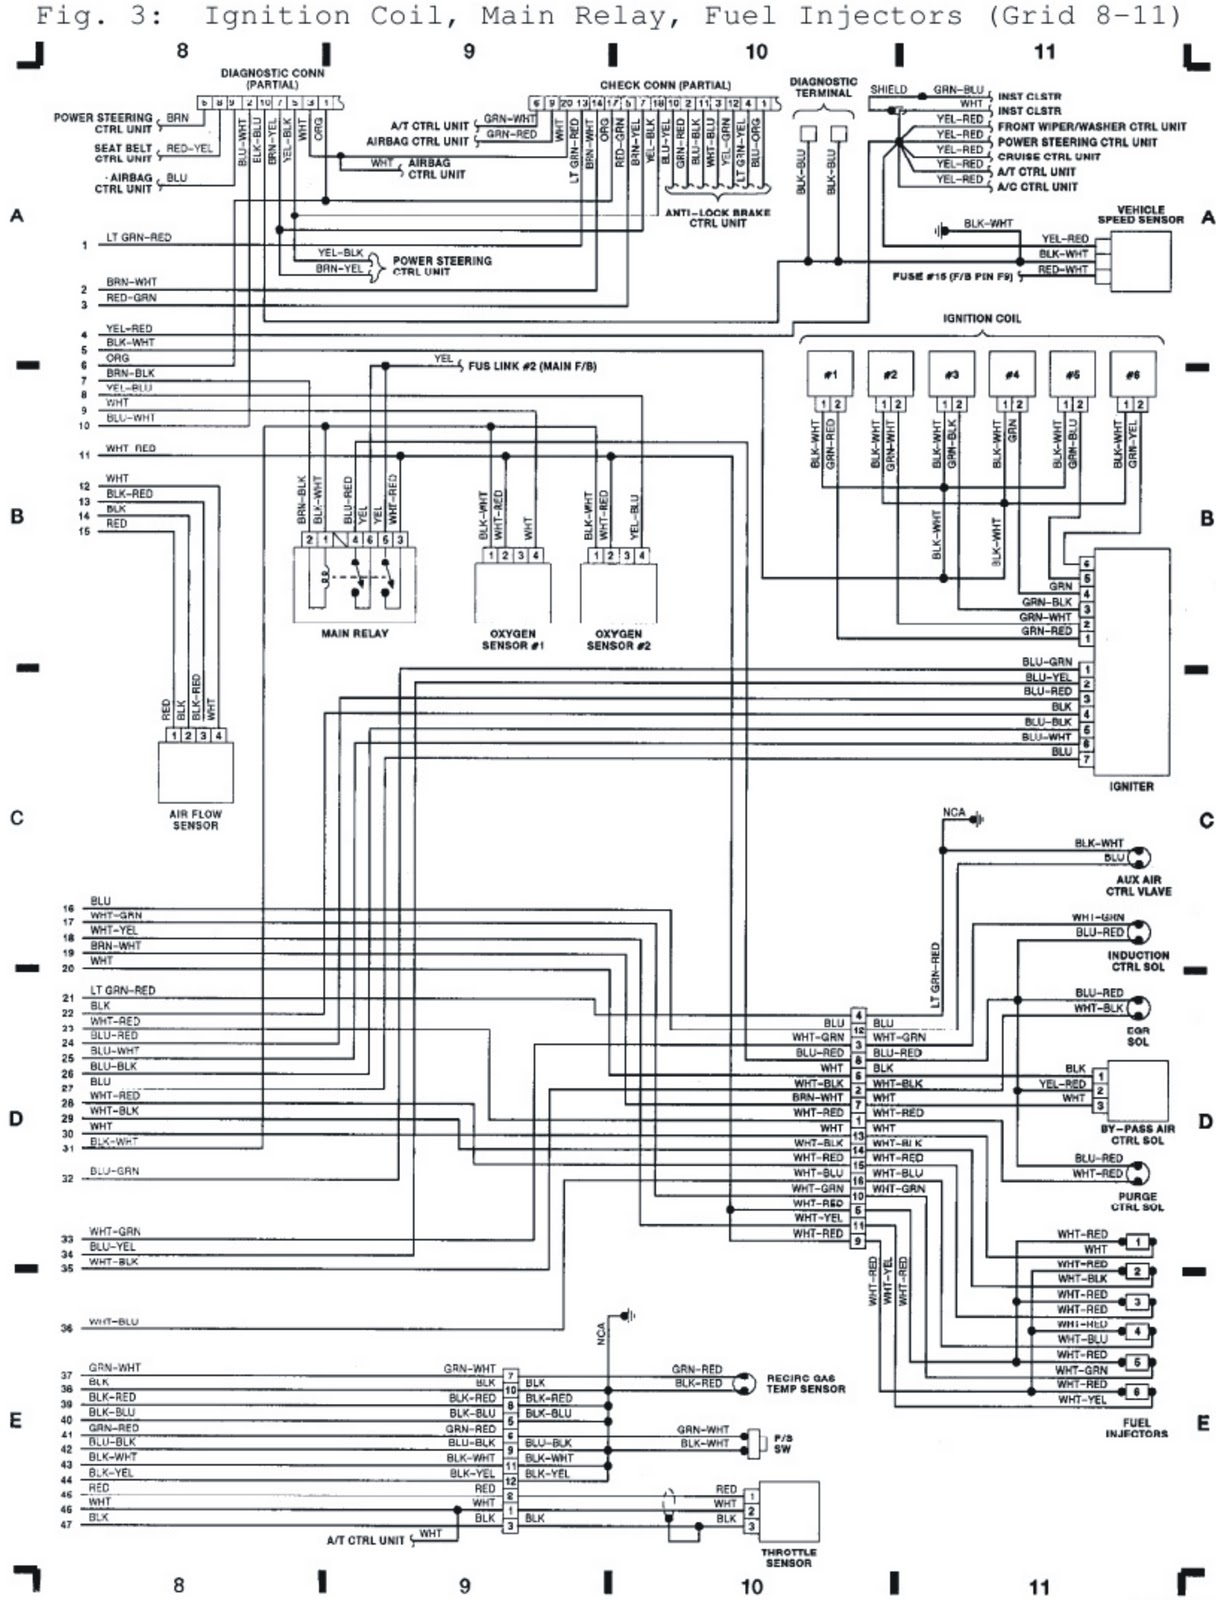 2011 Subaru Wrx Fuse Box Diagram Wiring Library 8 Pin Relay Schematic 02 Trusted 2013 Interior Diagrams